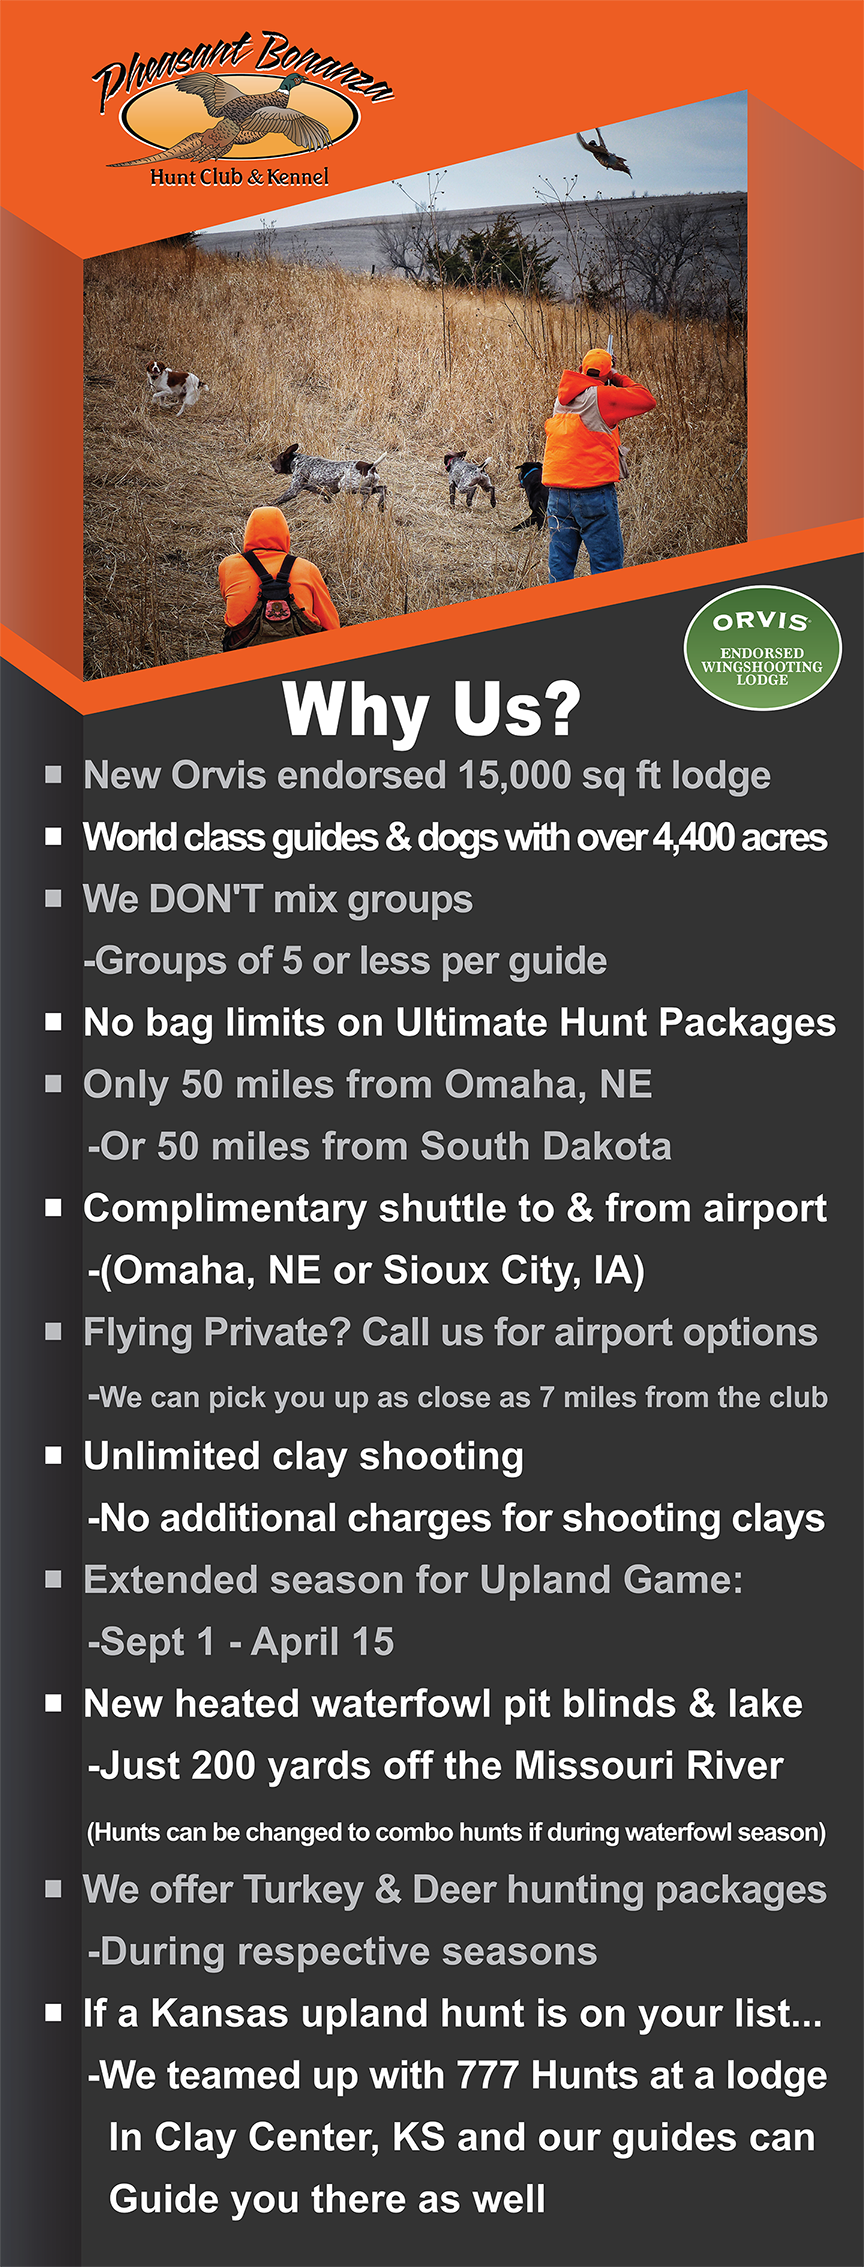 Why Choose Pheasant Bonanza over the competition? New Orvis endorsed 15,000 sq ft lodge. World class guides & dogs with over 4,400 acres. We DON'T mix groups, groups of 5 or less per guide. No bag limits on ultimate hunt packages. Only 50 miles from Omaha, NE or 50 miles from South Dakota. Complimentary shuttle to & from airport (Omaha, NE or Sioux City, IA). Flying Private? Call us for airport options, we can pick you up as close as 7 miles from the club. Unlimited clay shooting, no additional charges for shooting clays. Extended season for upland game- September 1-April 15. New heated waterfowl pit blinds & lake just 200 yards off the Missouri River (Hunts can be changed to combo hunts if during waterfowl season). We also offer Turkey & Deer hunting packages during respective seasons. If a Kansas upland hunt is on your list, we are teamed up with 777 Hunts at a lodge in Clay Center, KS and our guides can guide you there as well.